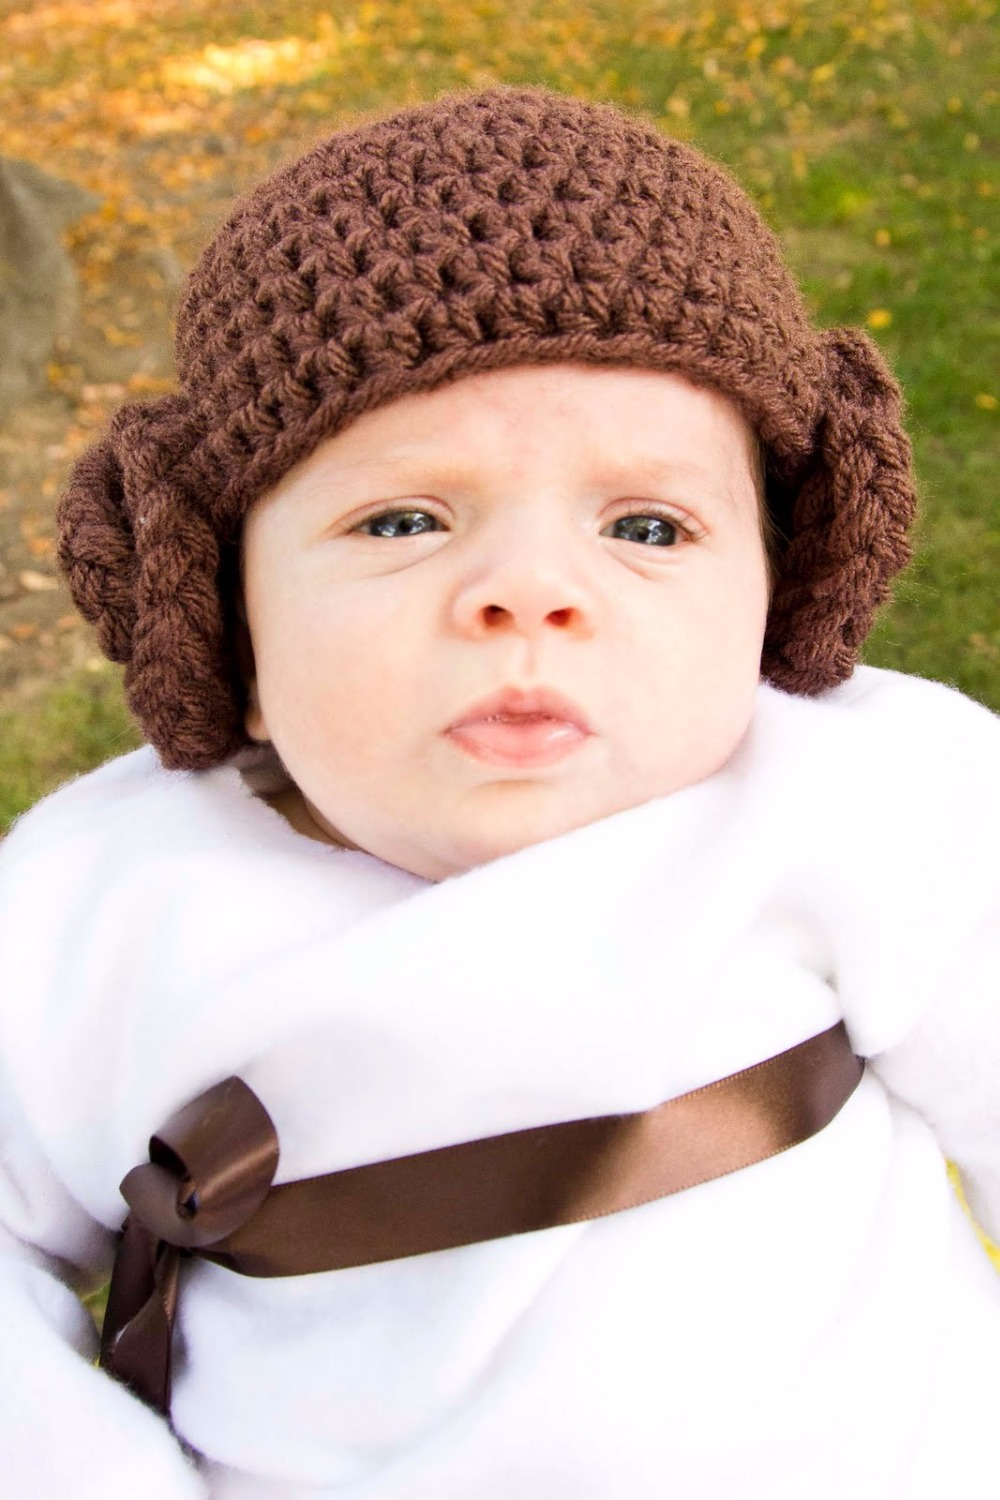 Princess Leia Inspired Hat/ Crochet Princess Leia Wig Hat Available in Newborn to Child Size- MADE TO ORDER